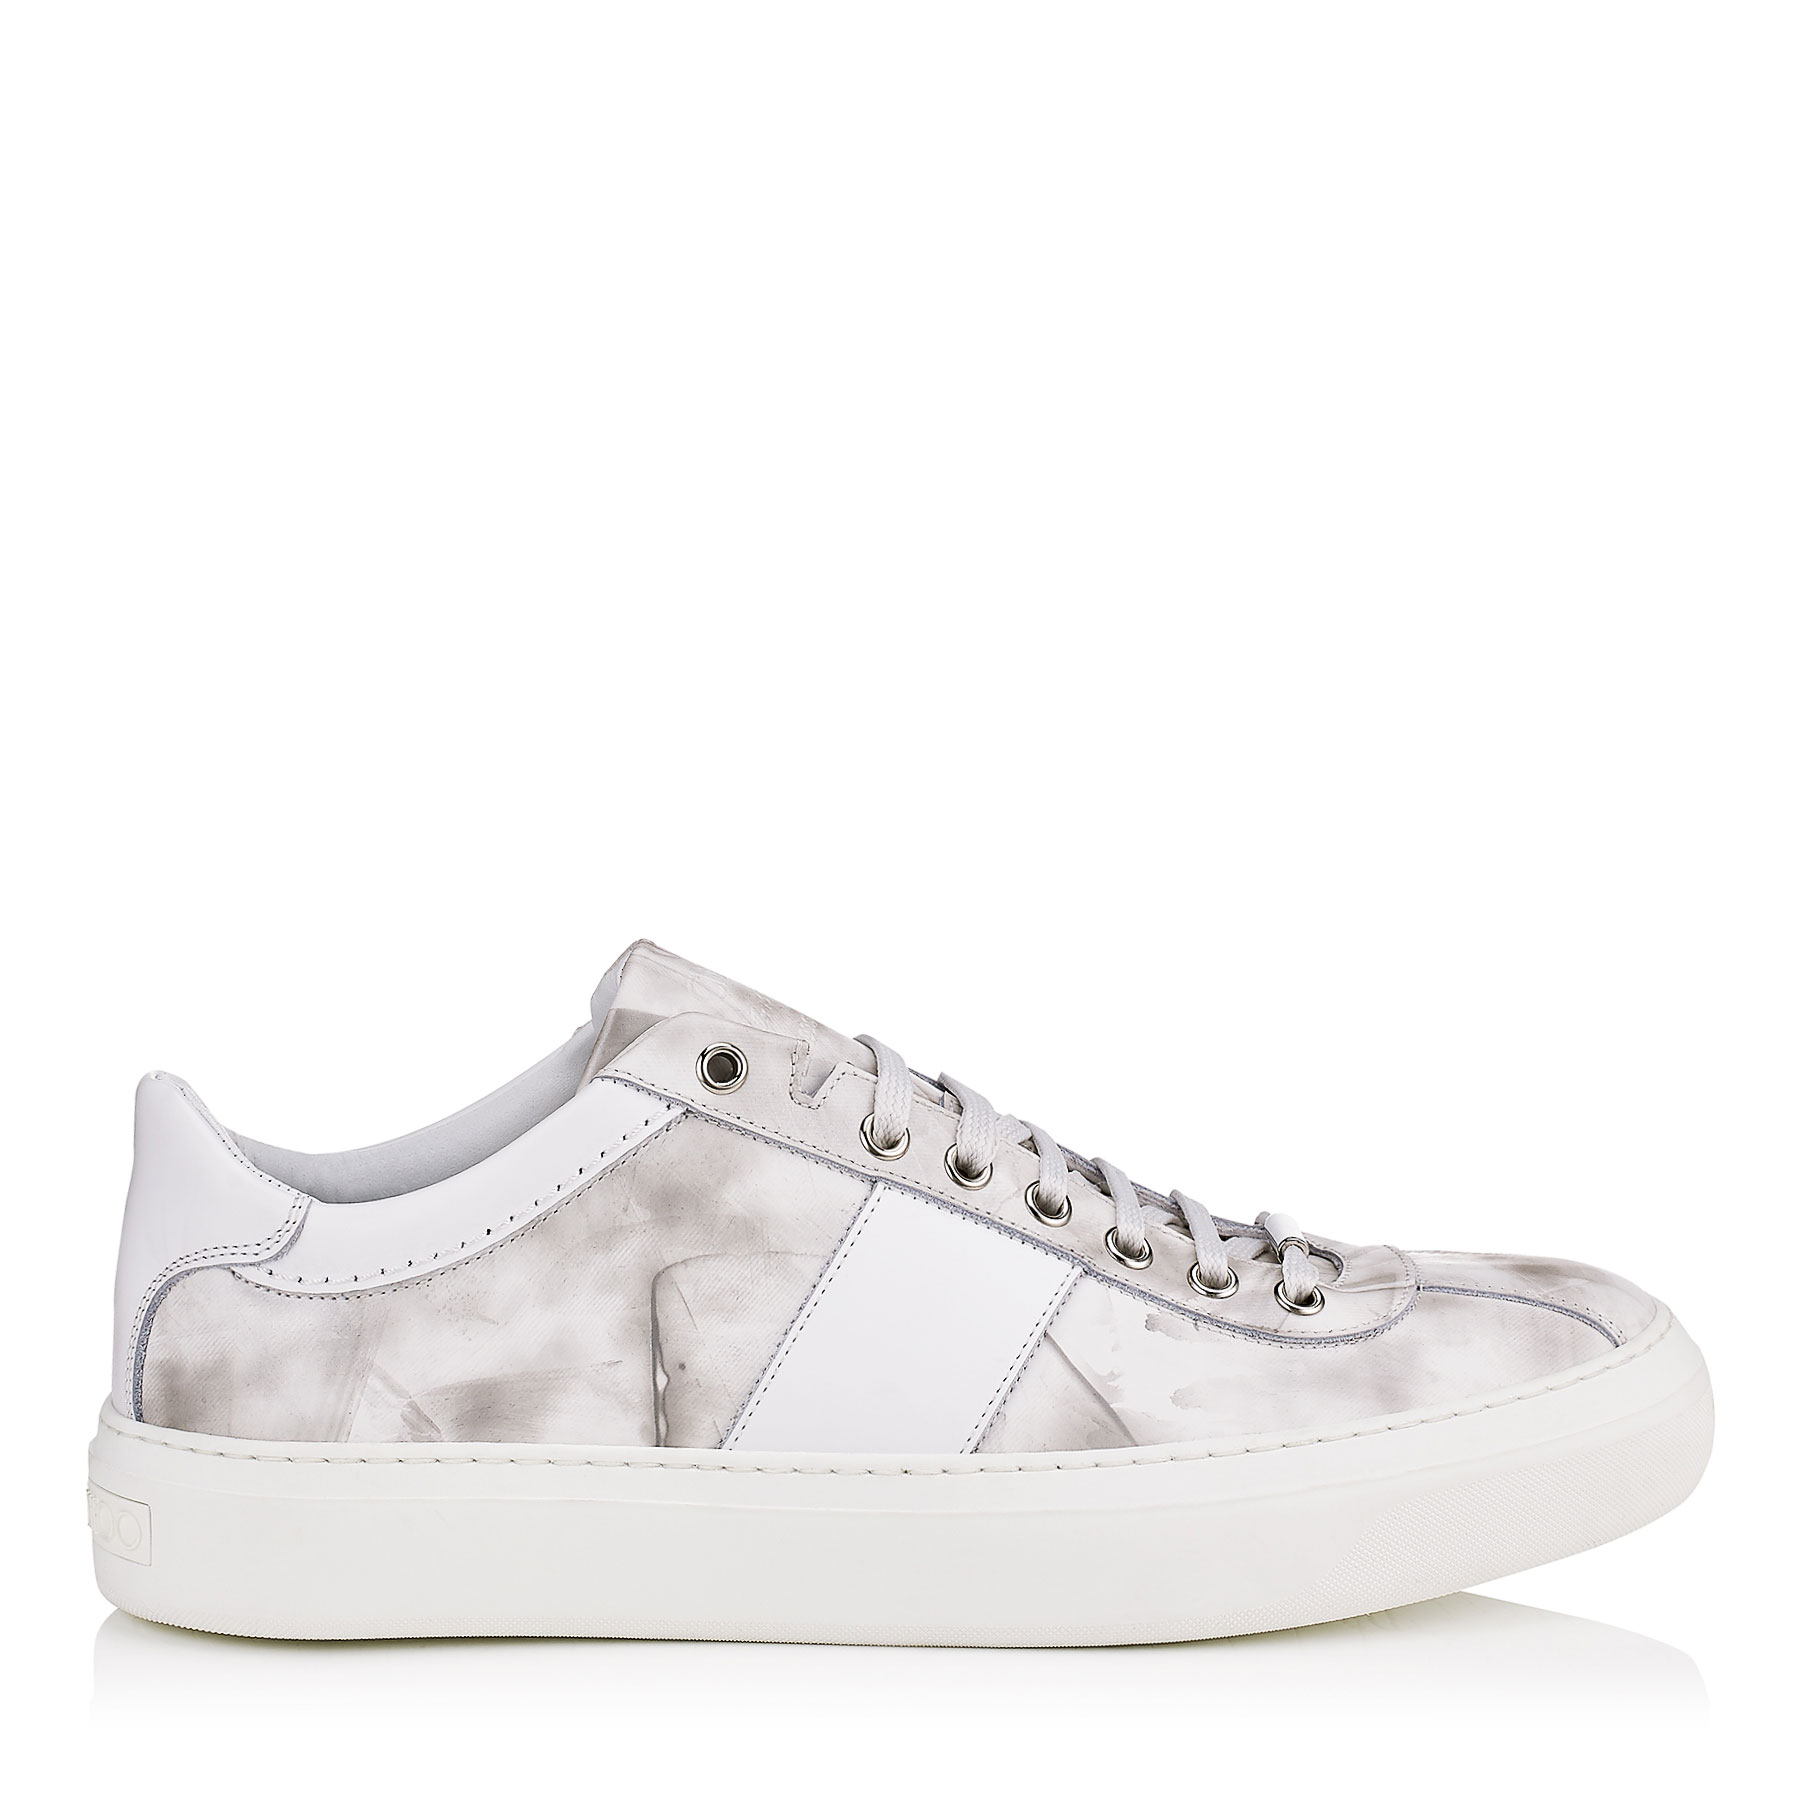 PORTMAN Ultra White Storm Calf Leather Low Top Trainers